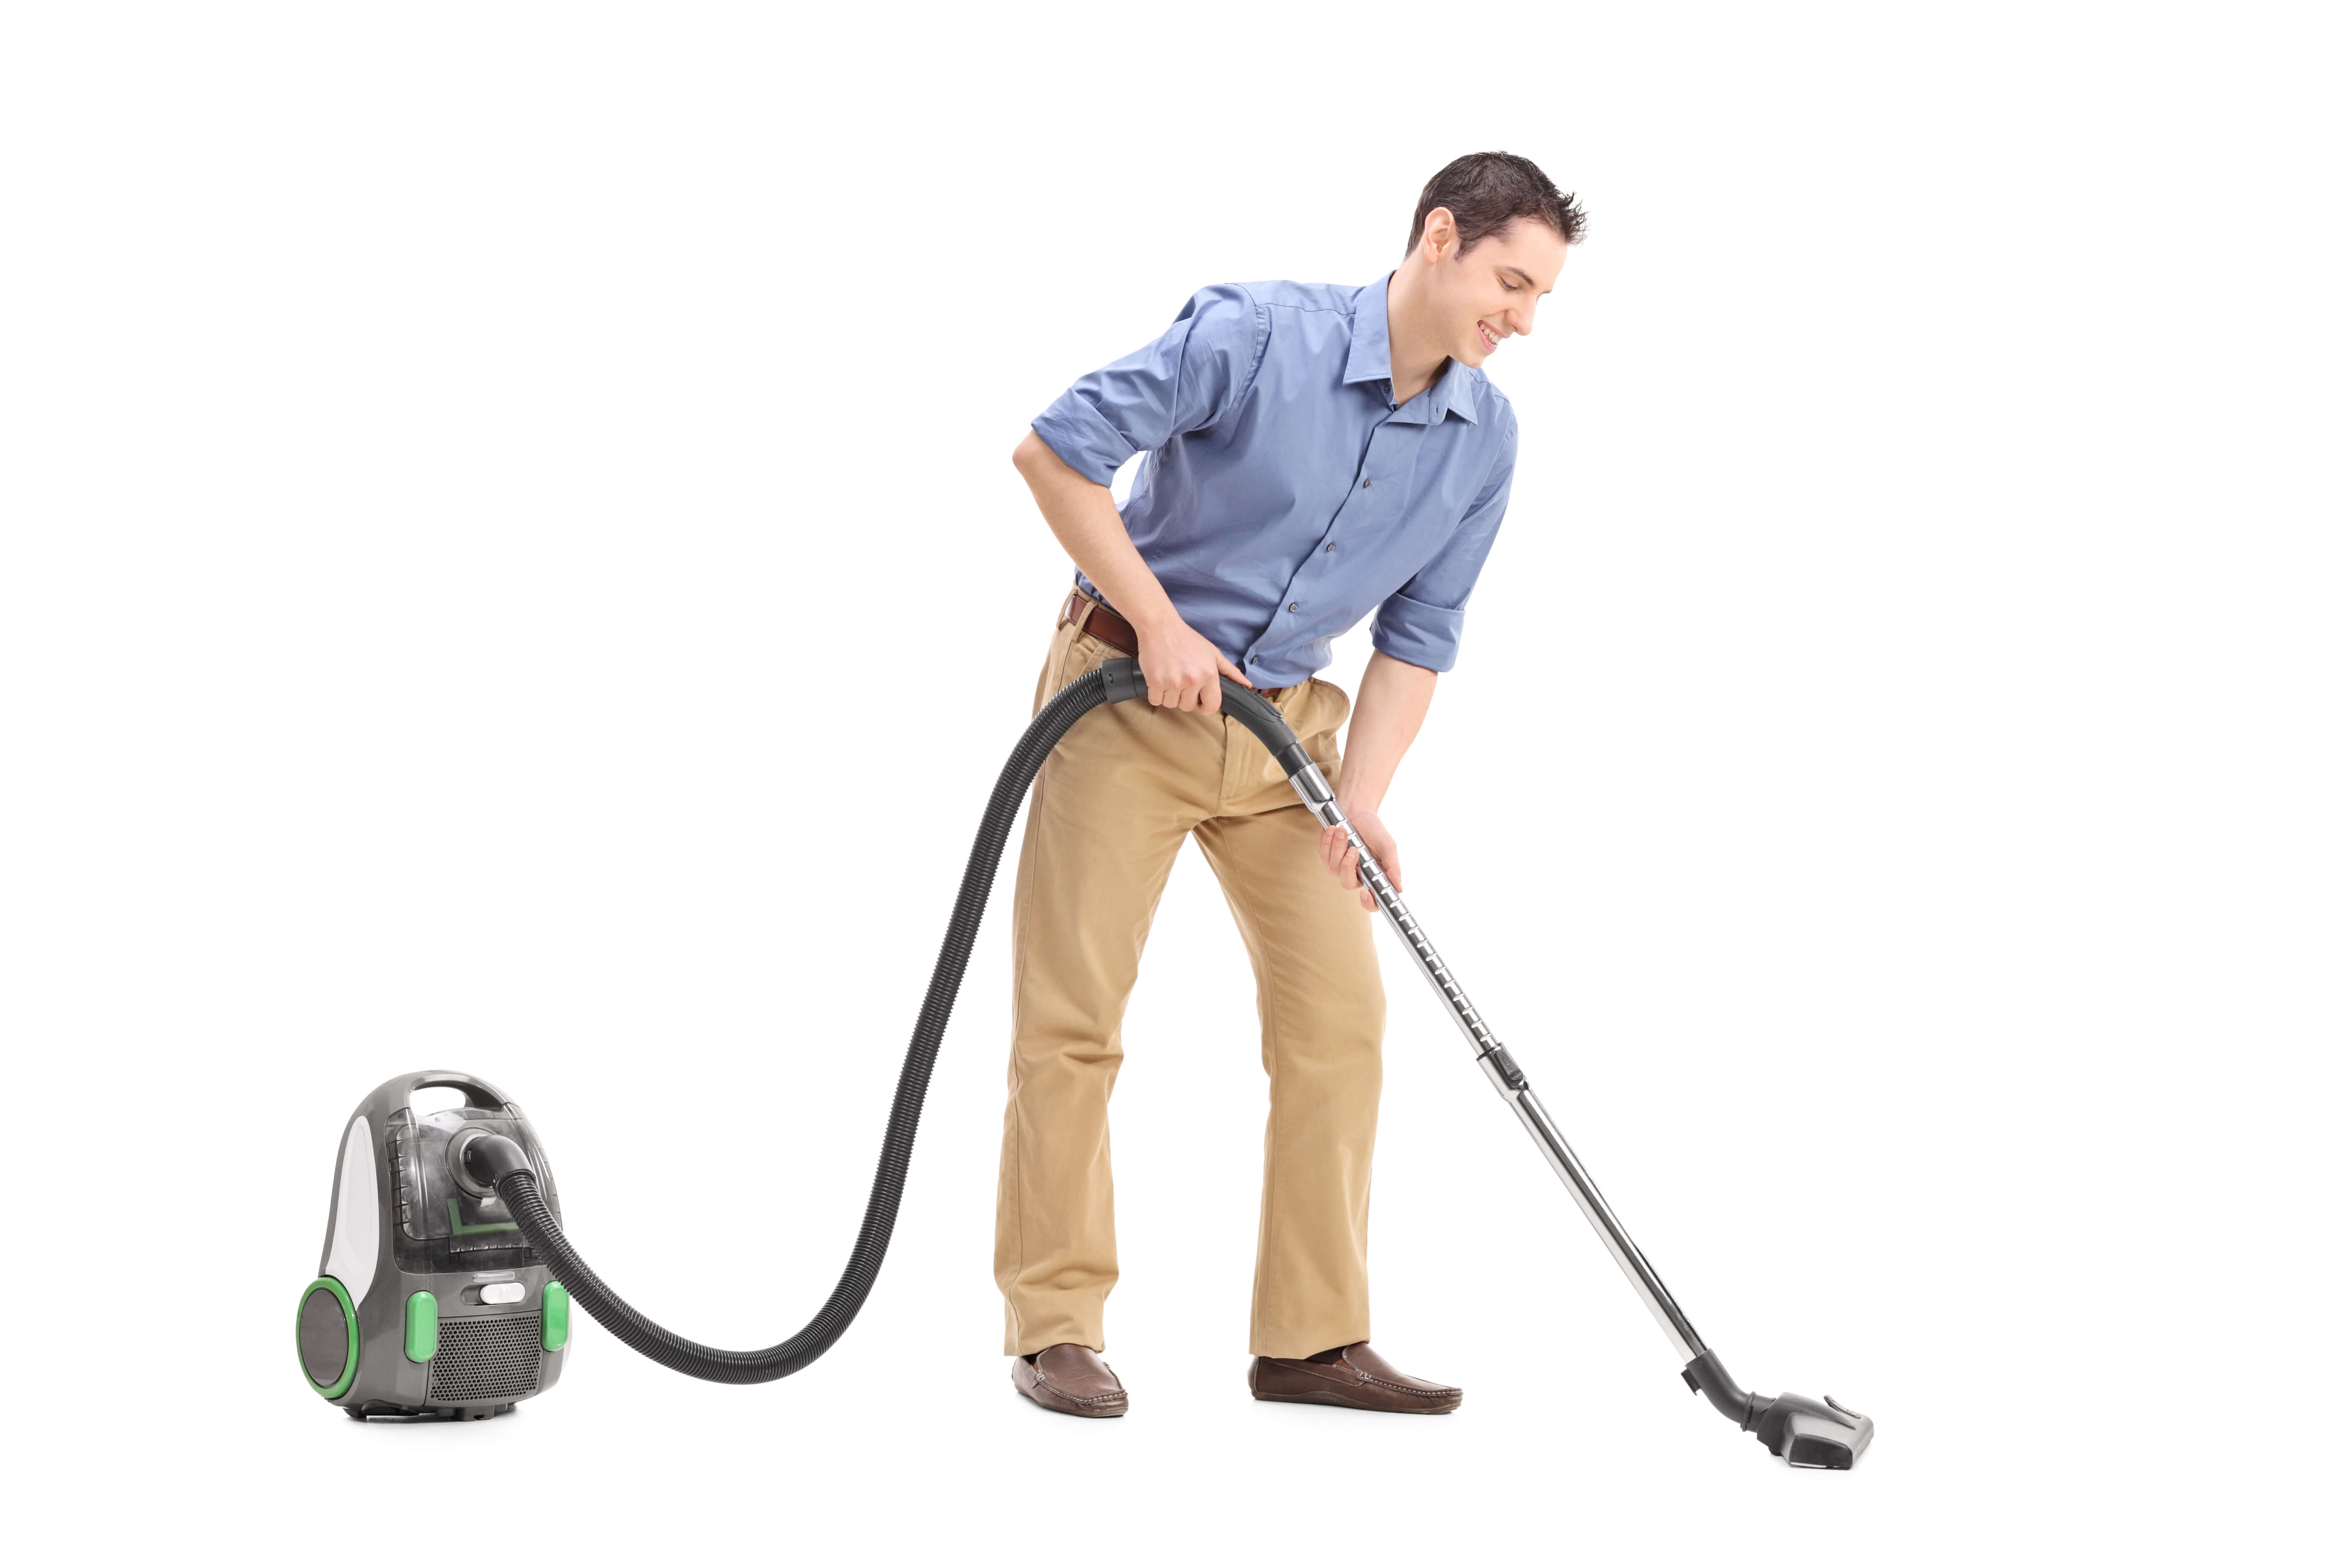 The 5 Best Samsung Vacuums For Your Home